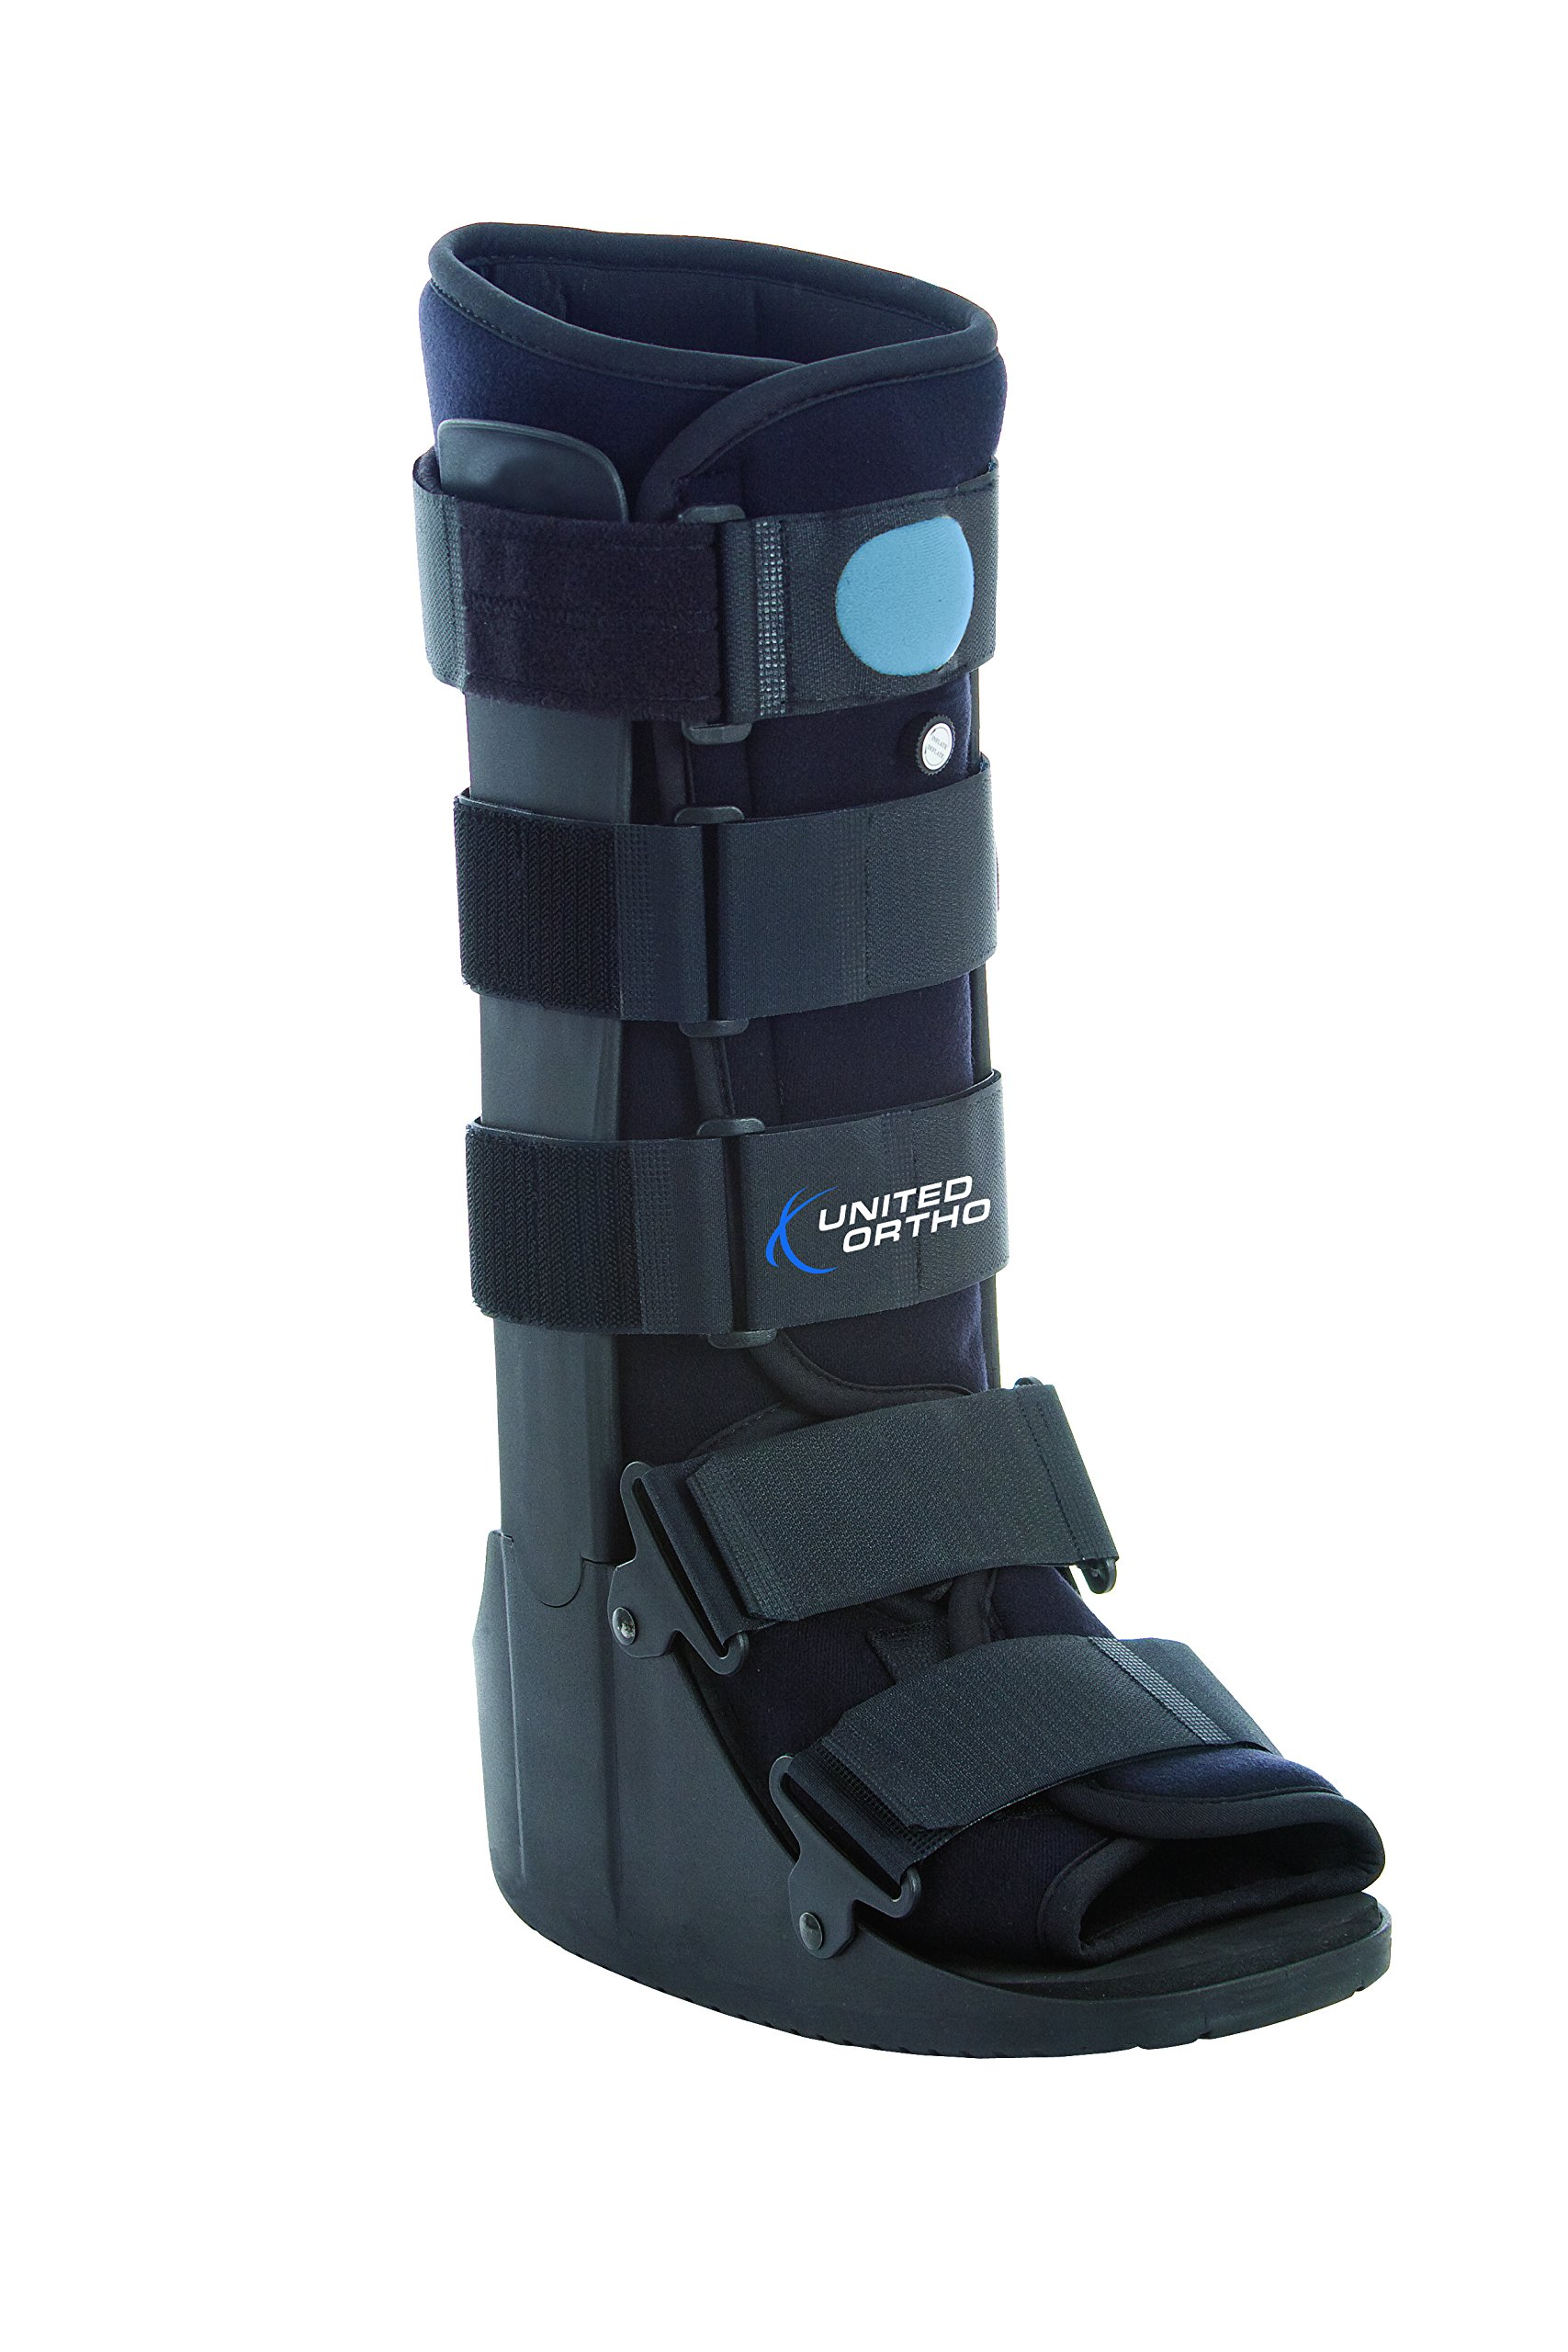 United Surgical Air Cam Walker Fracture Boot, Small